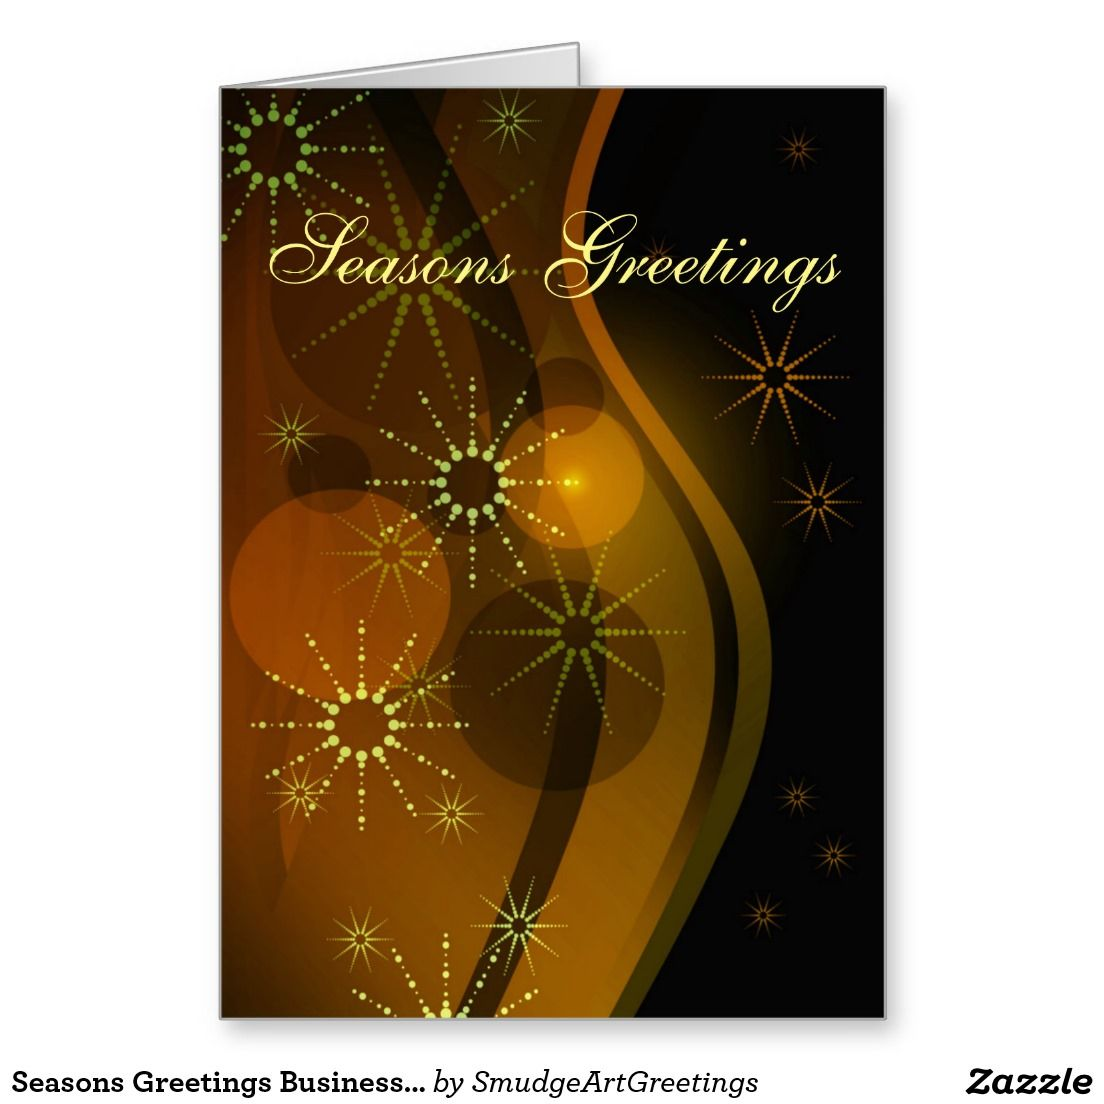 Seasons greetings businesscorporate abstract card business and seasons greetings businesscorporate abstract greeting card m4hsunfo